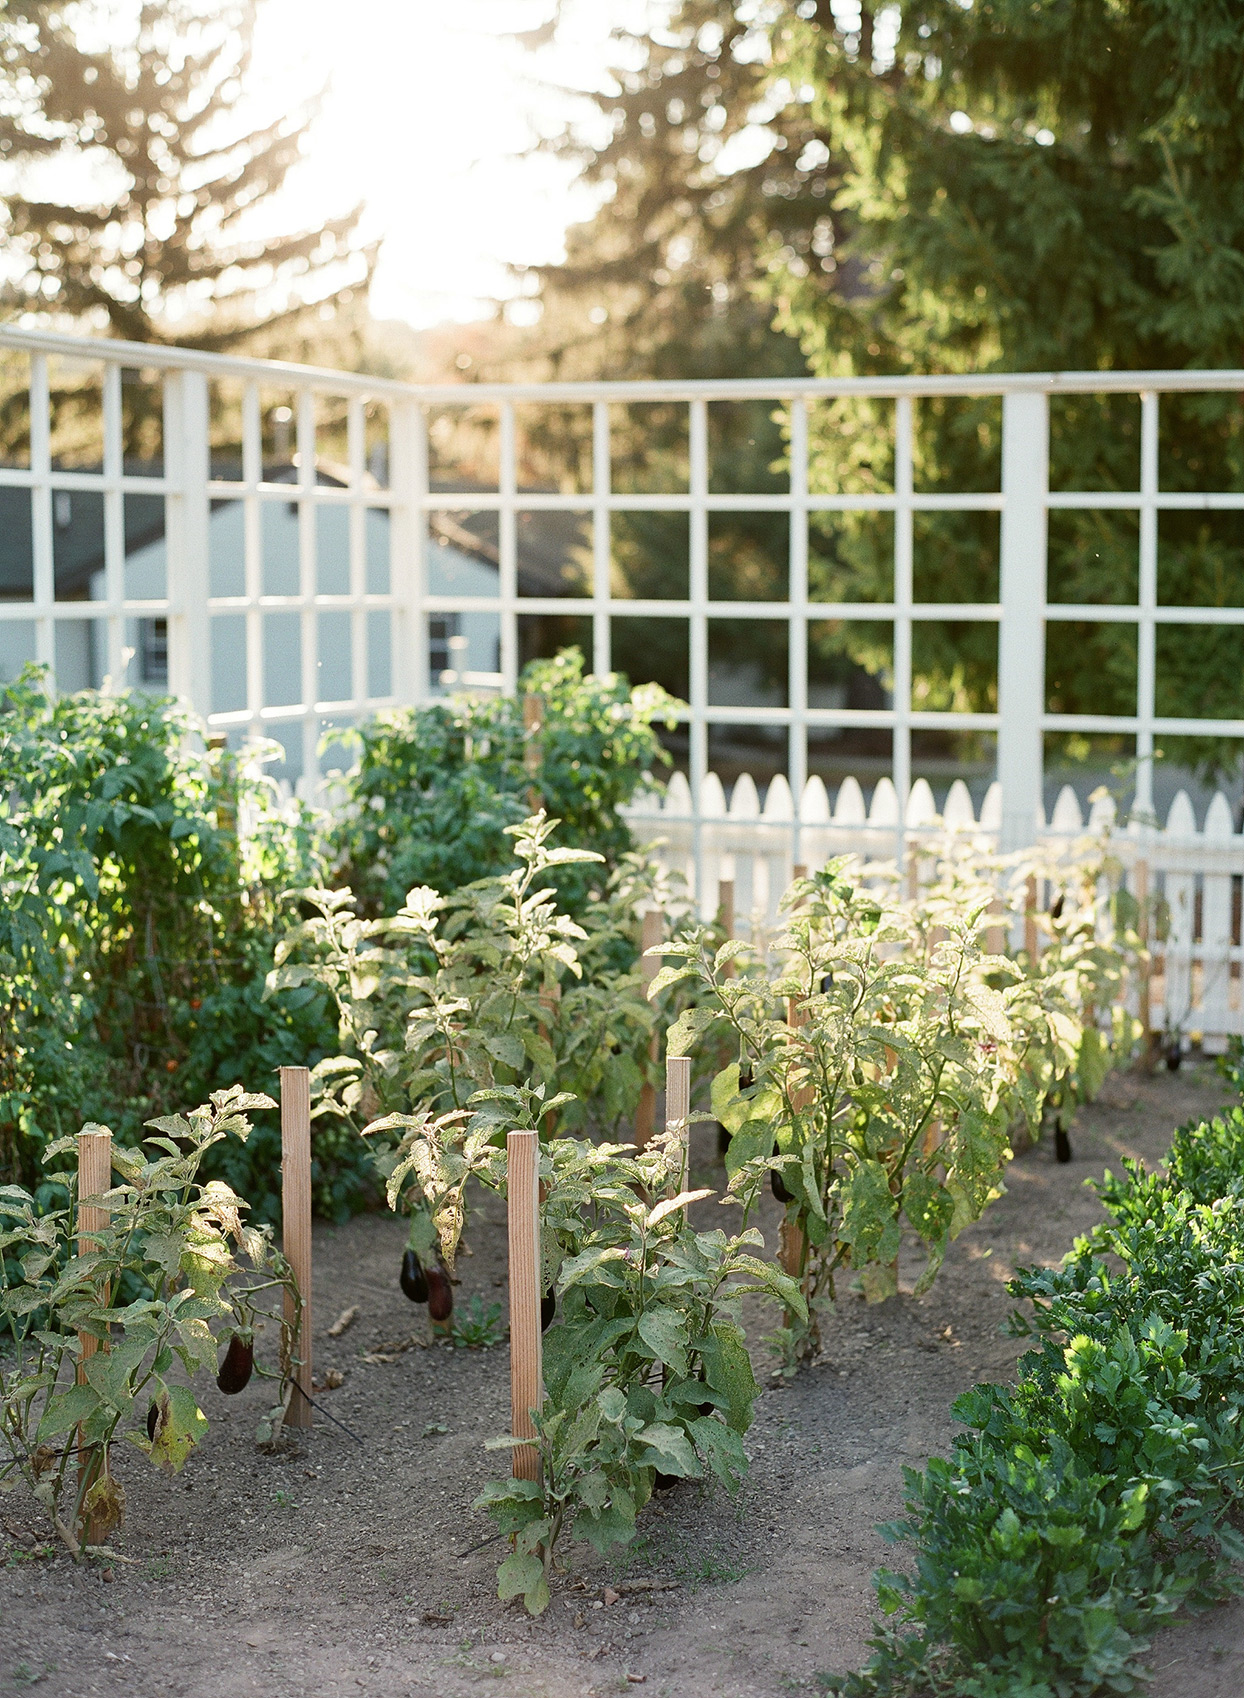 eggplants growing in garden at rehearsal dinner location